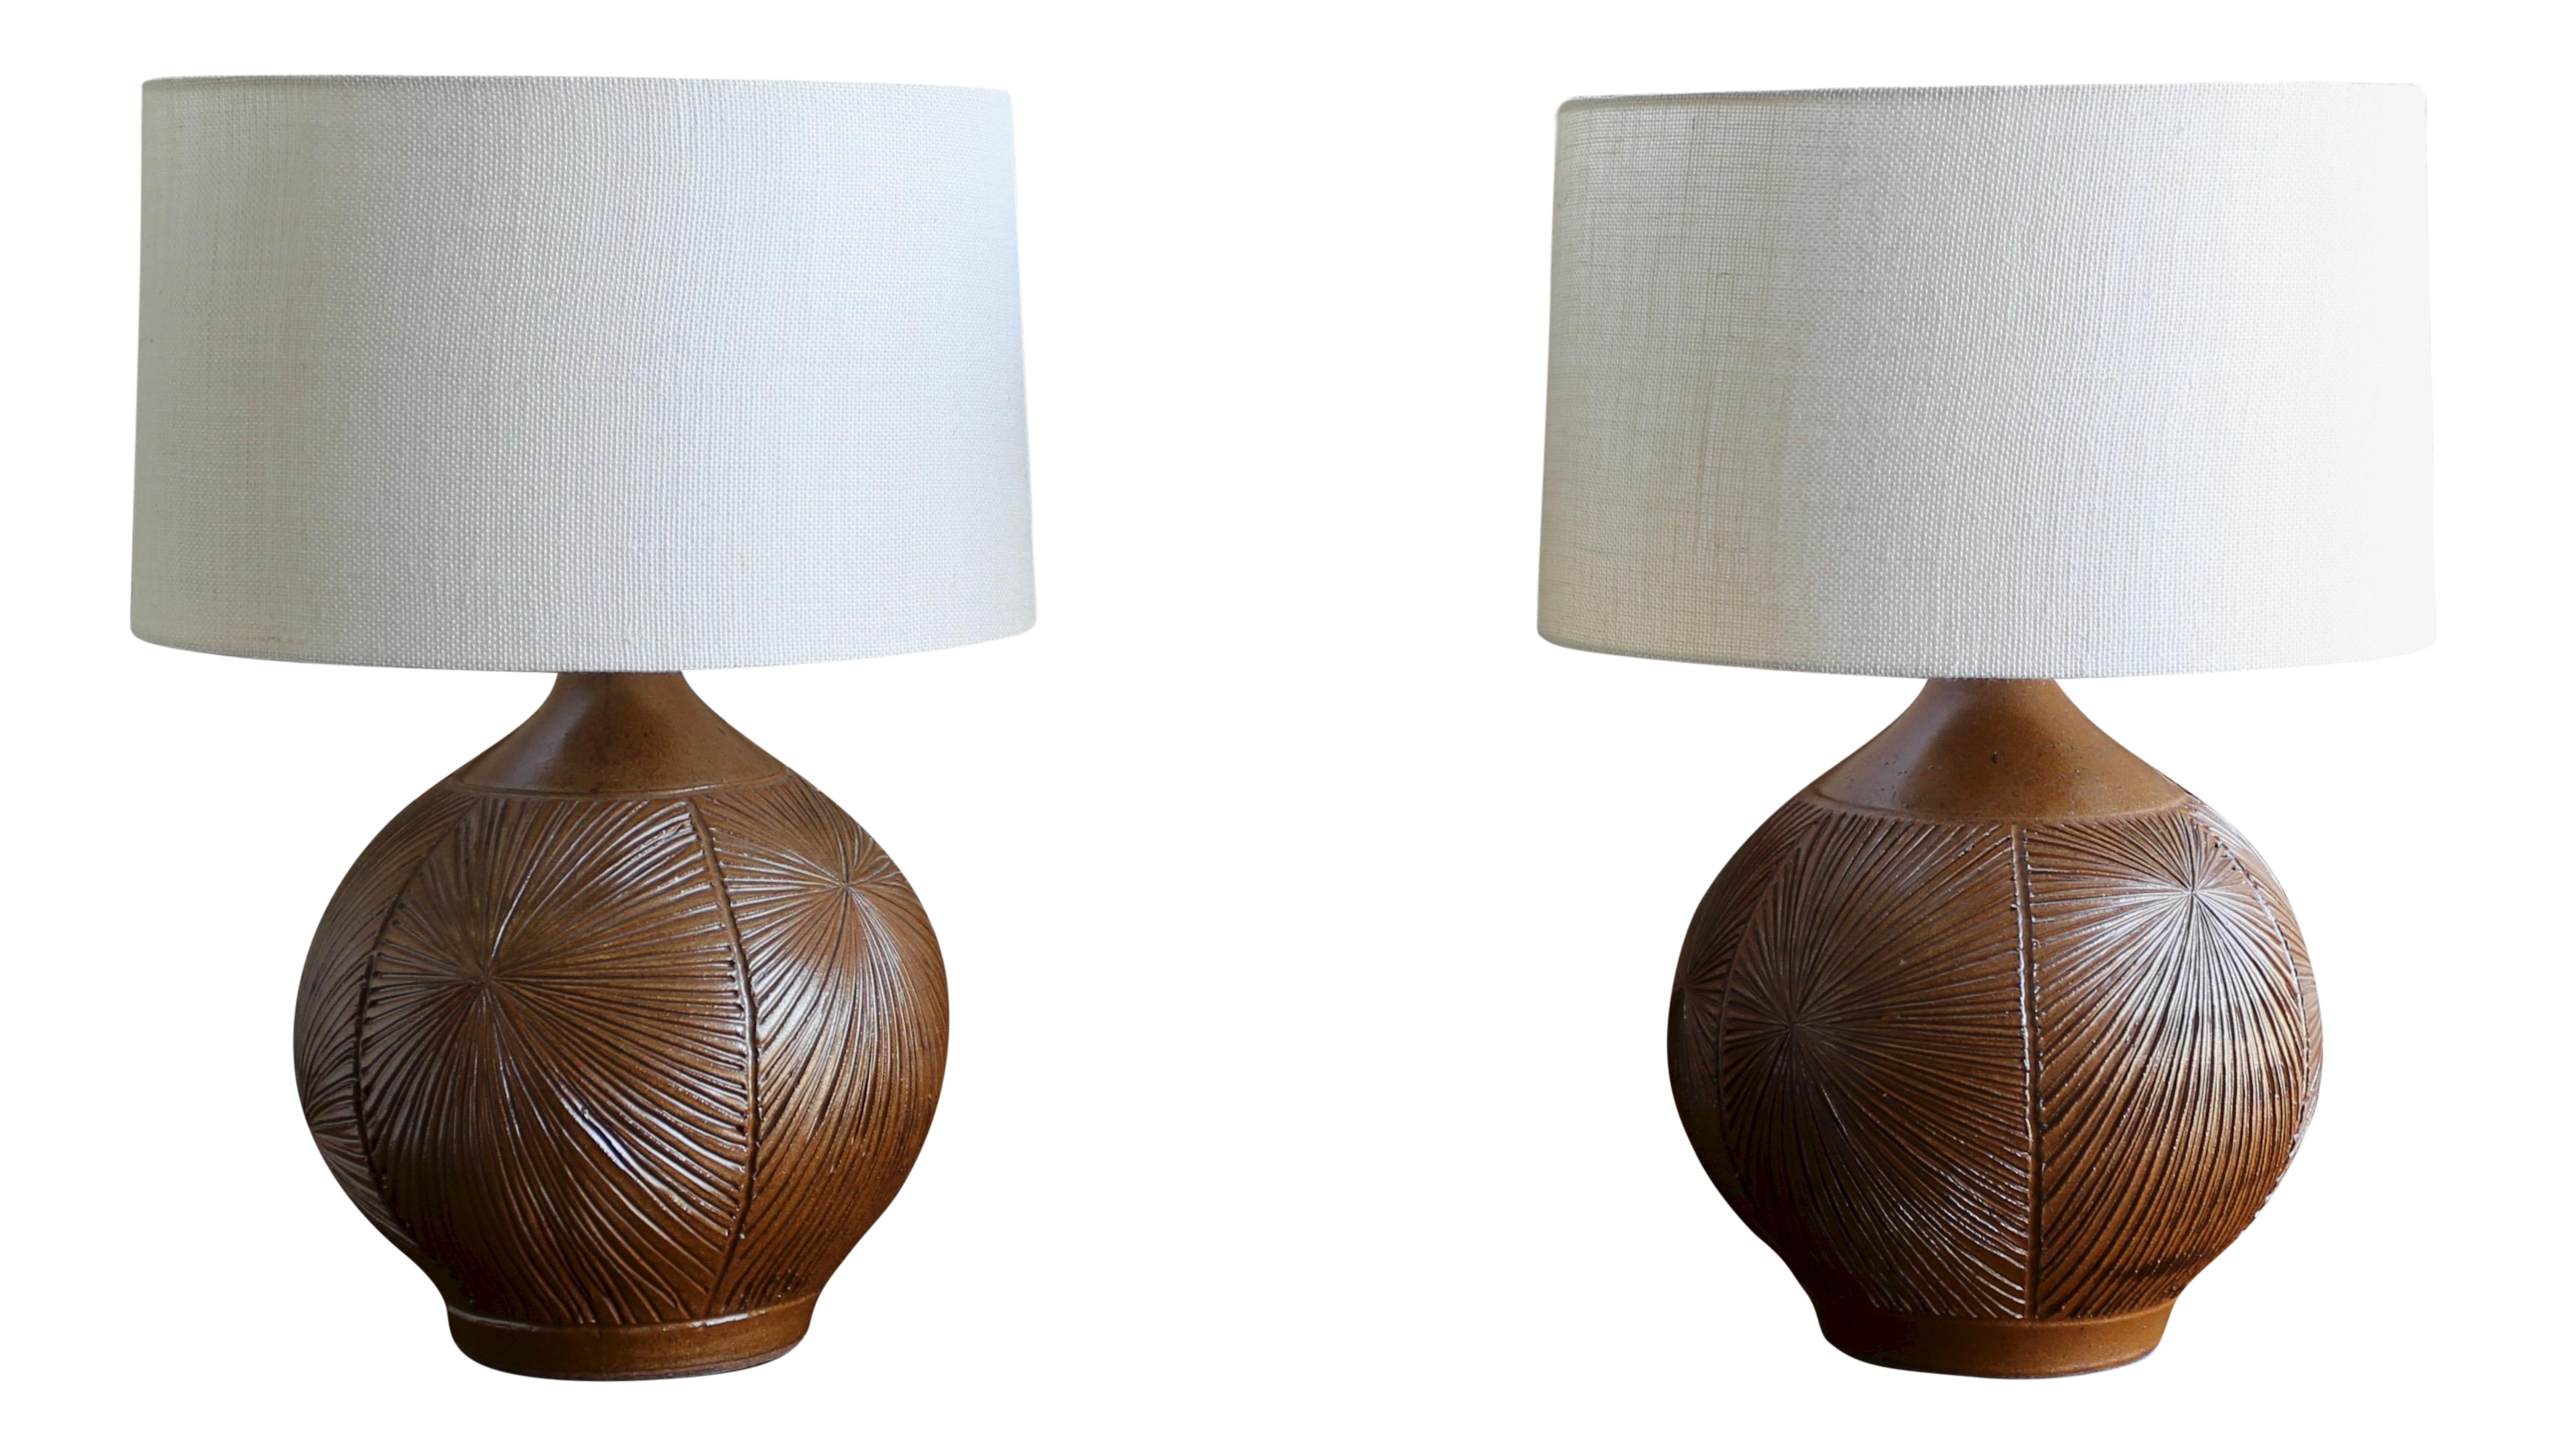 Distinguished Large Pair Of Earthgender Lamps By David Cressey &